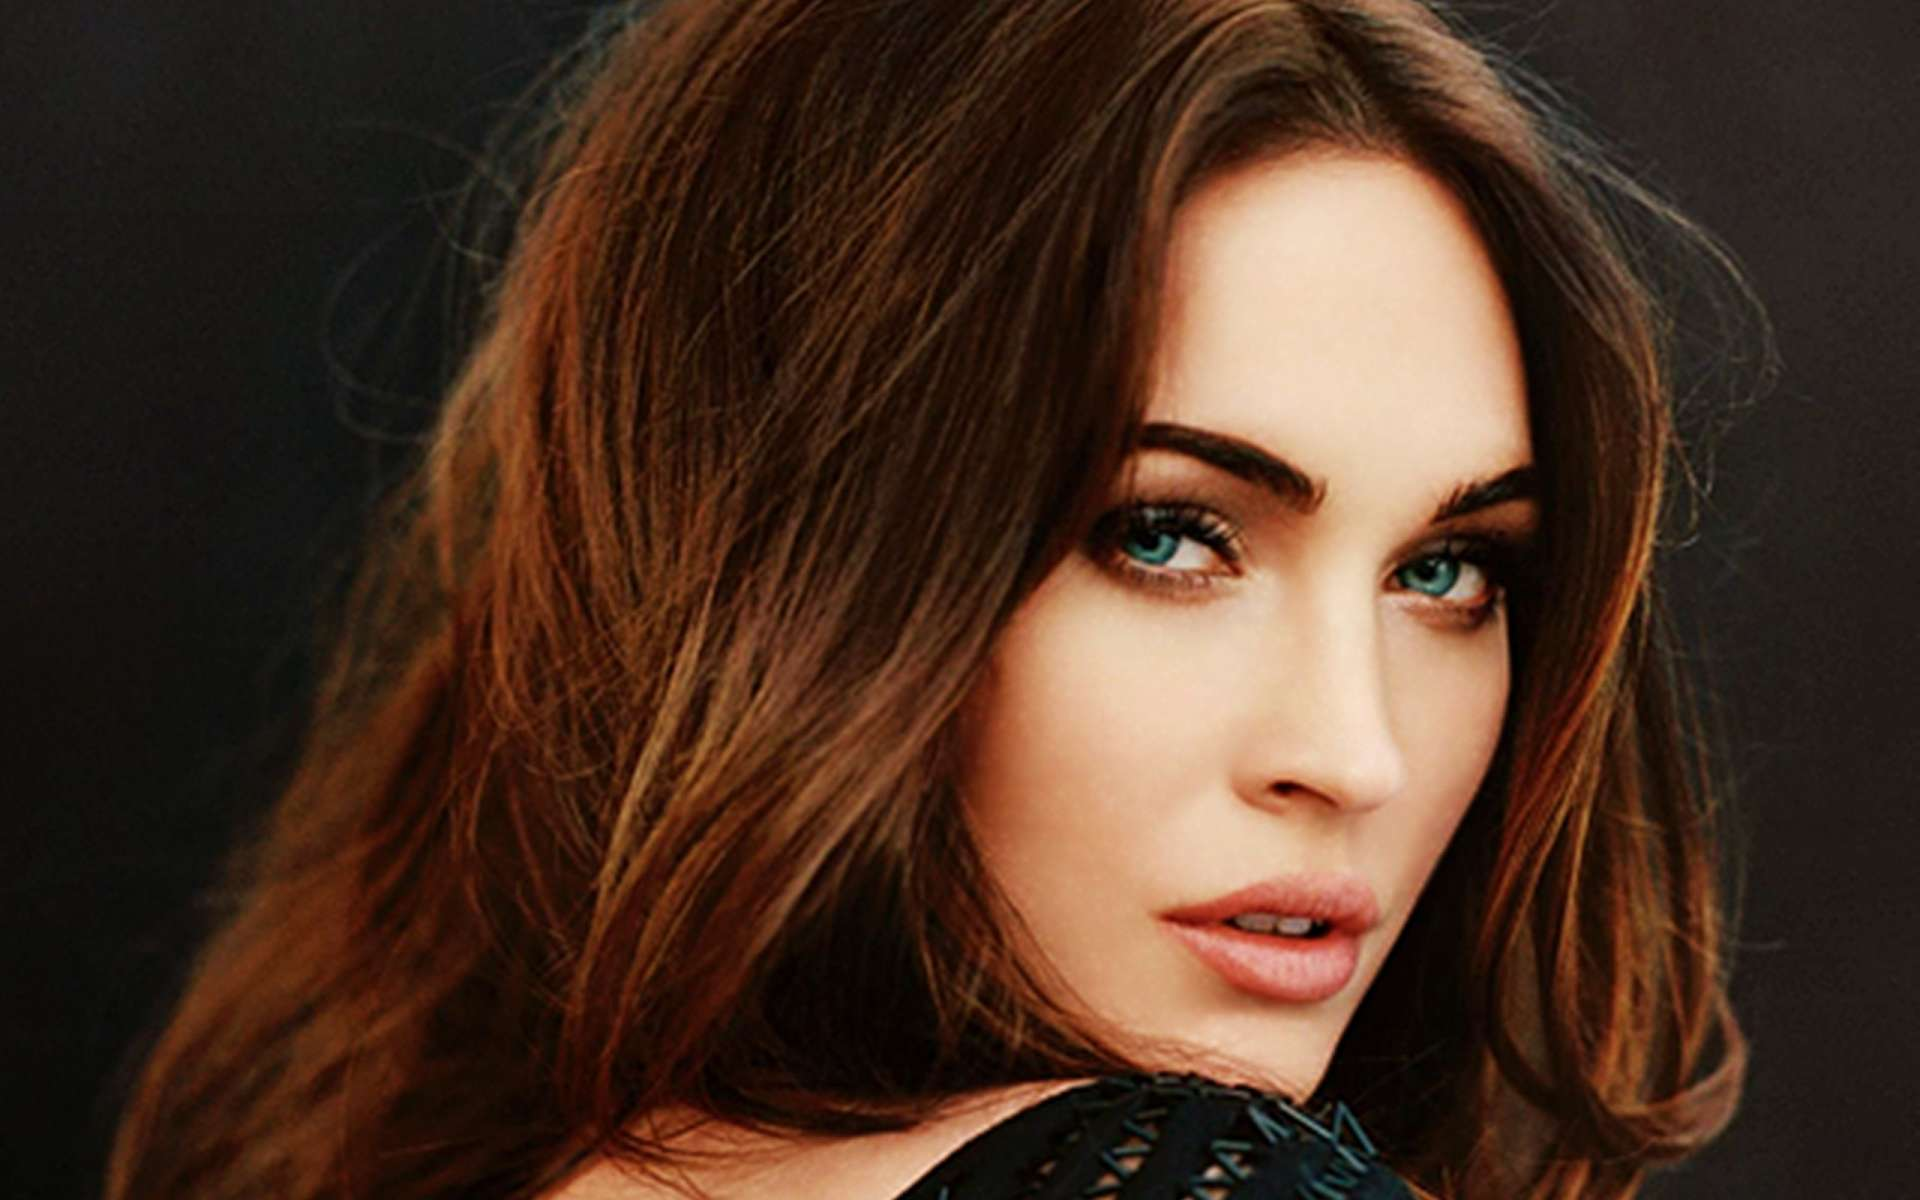 model megan fox hd wallpaper hd images picture